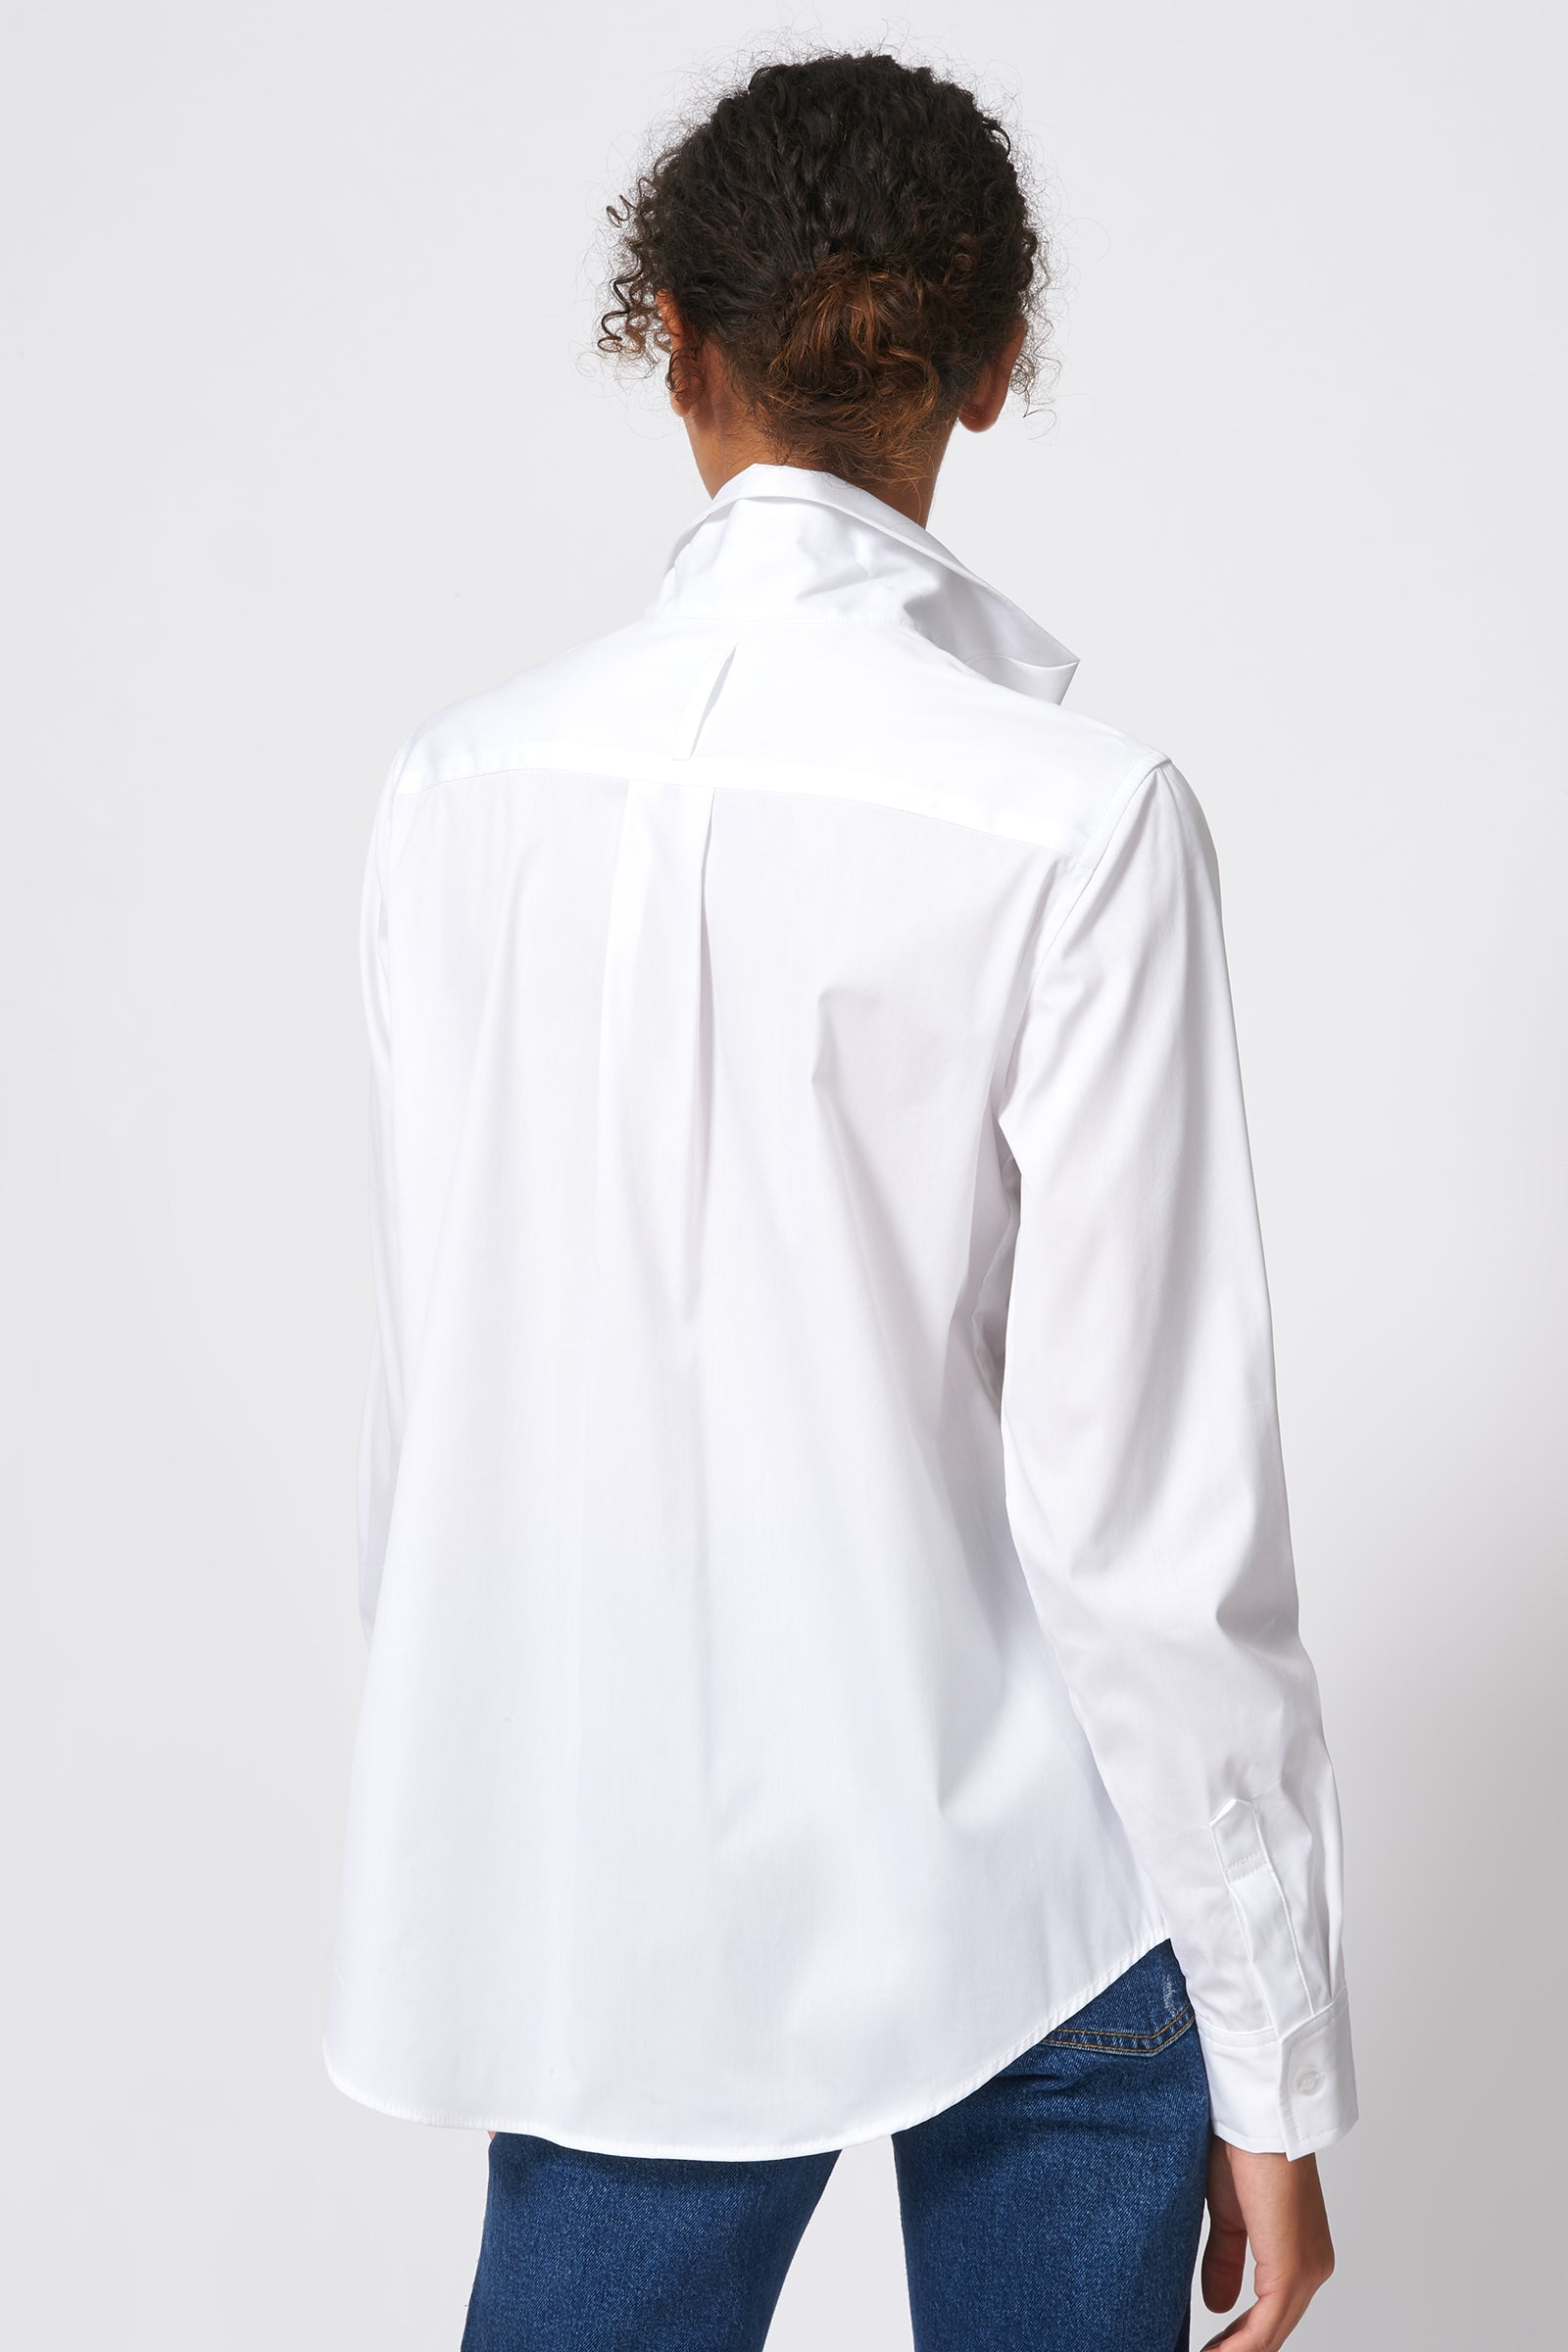 Kal Rieman Ginna Box Pleat Shirt in White Stretch on Model Back View